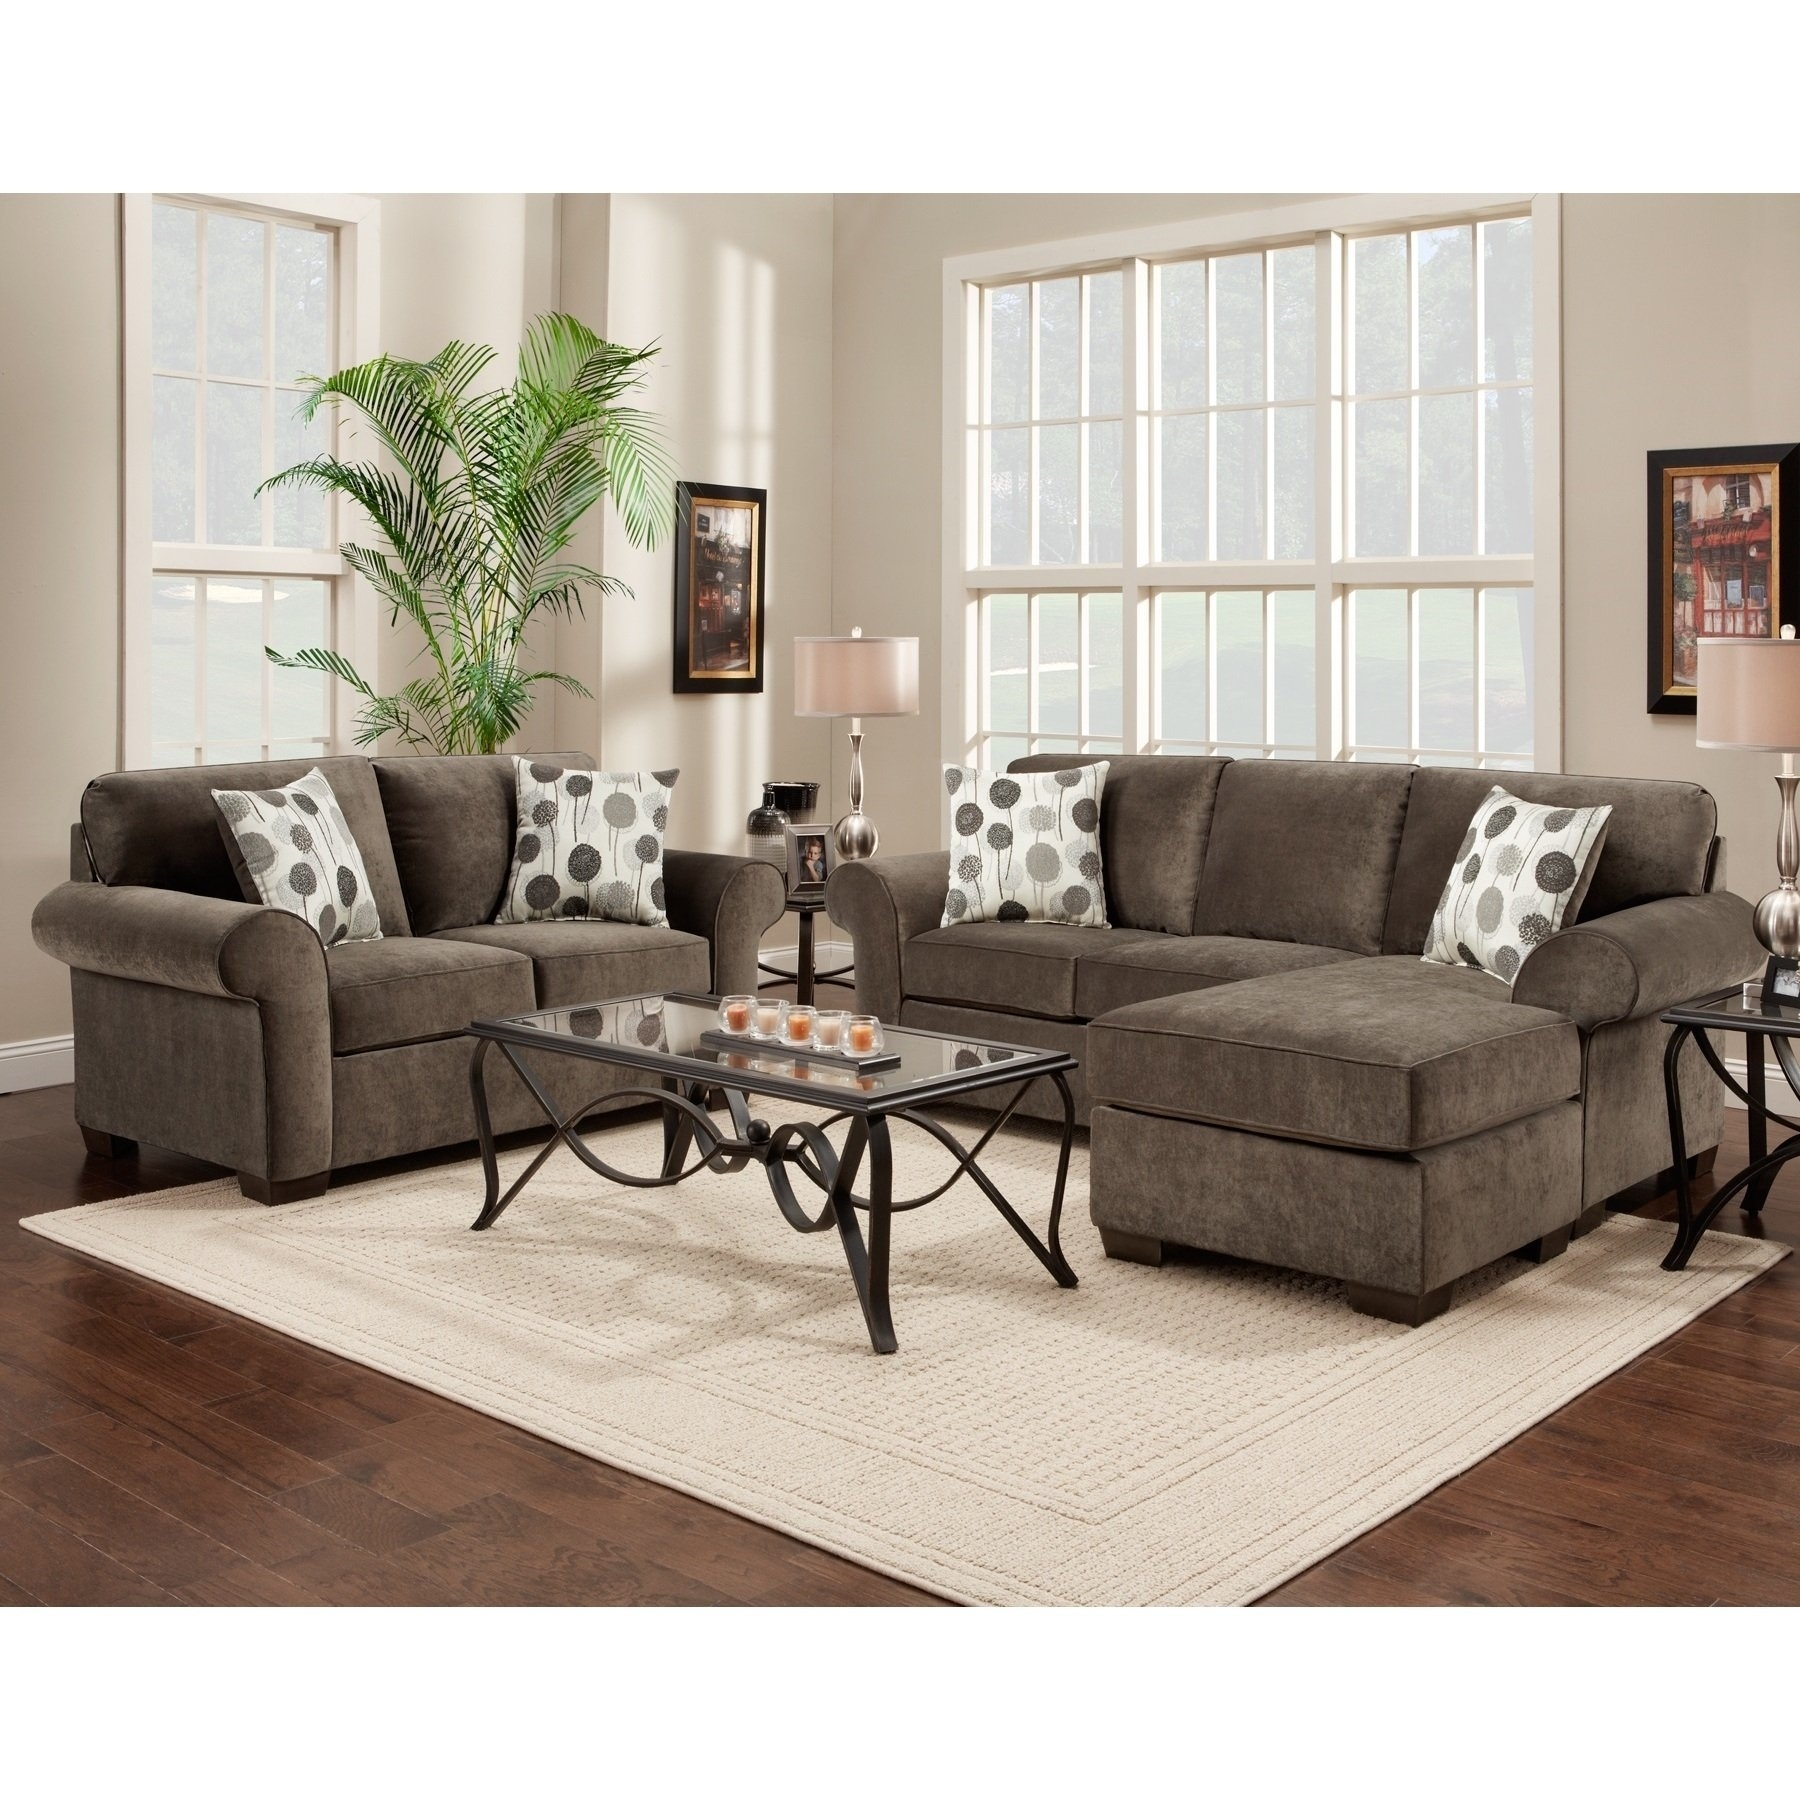 Loveseat Sectional | Whitecraftwoodard Mona Wicker Right Arm Intended For Taron 3 Piece Power Reclining Sectionals With Right Facing Console Loveseat (Image 12 of 20)